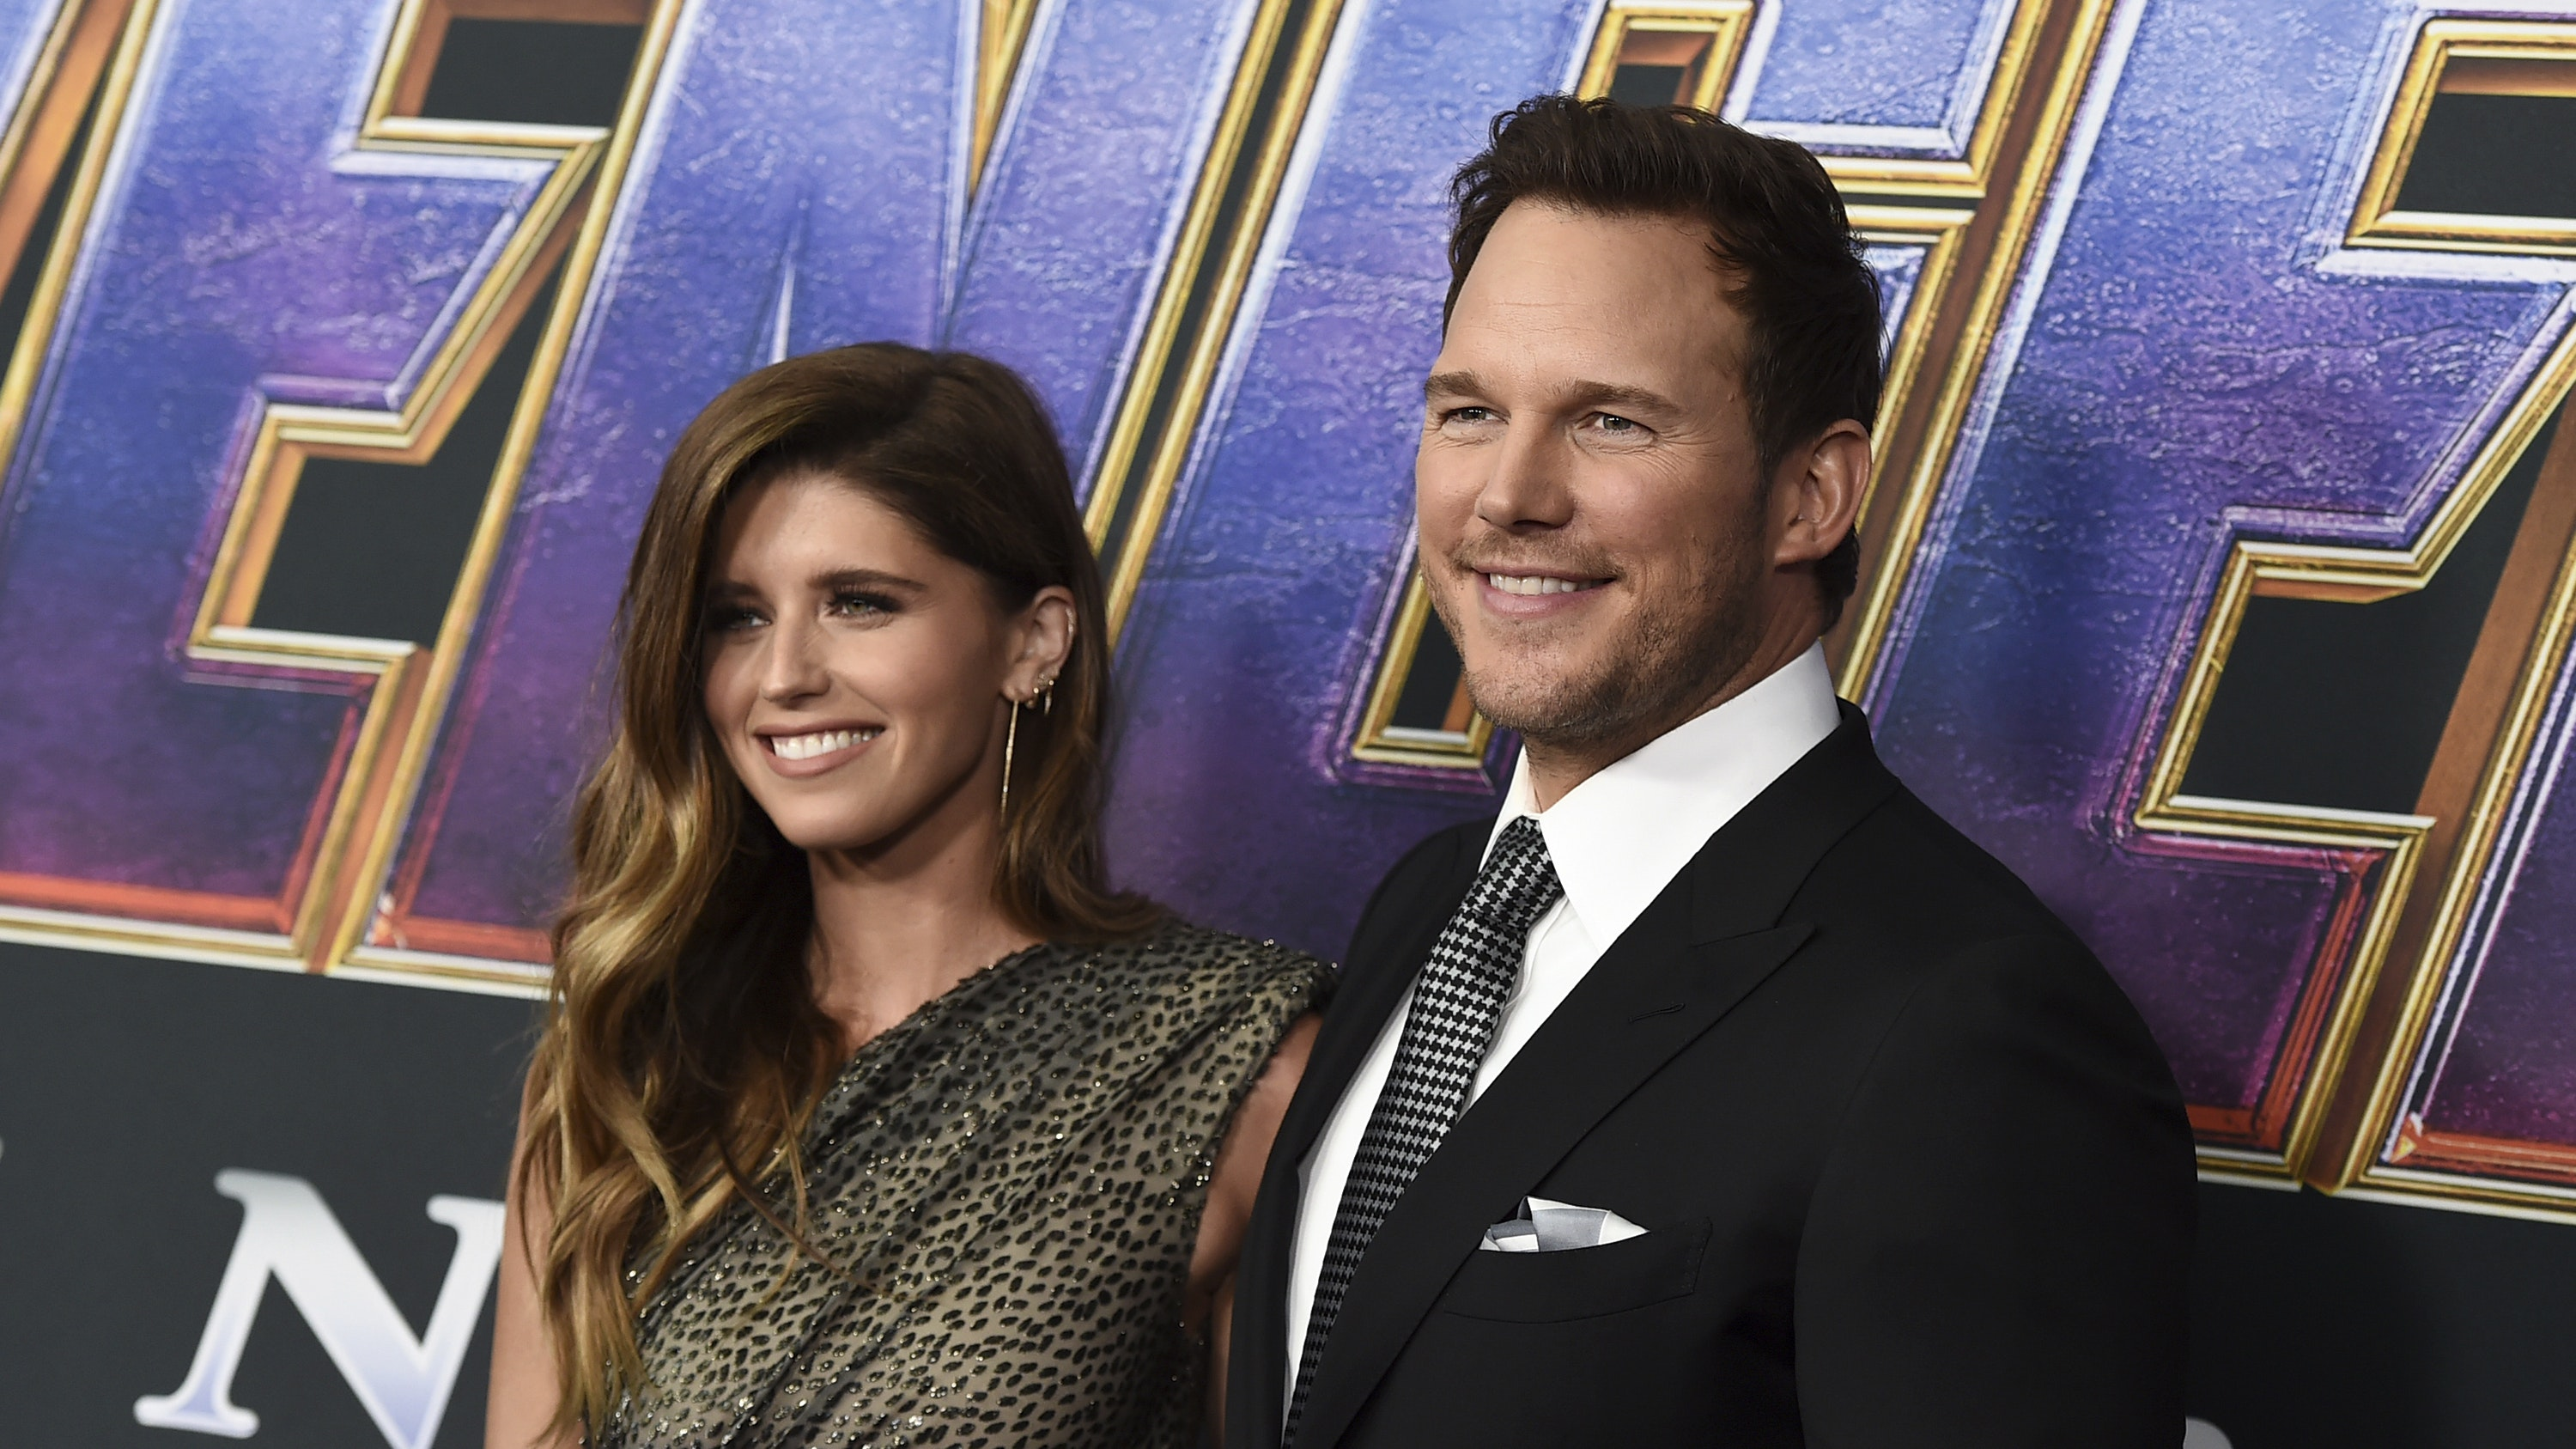 Chris Pratt & Katherine Schwarzenegger Make Red Carpet Debut at 'Avengers: Endgame' Premiere